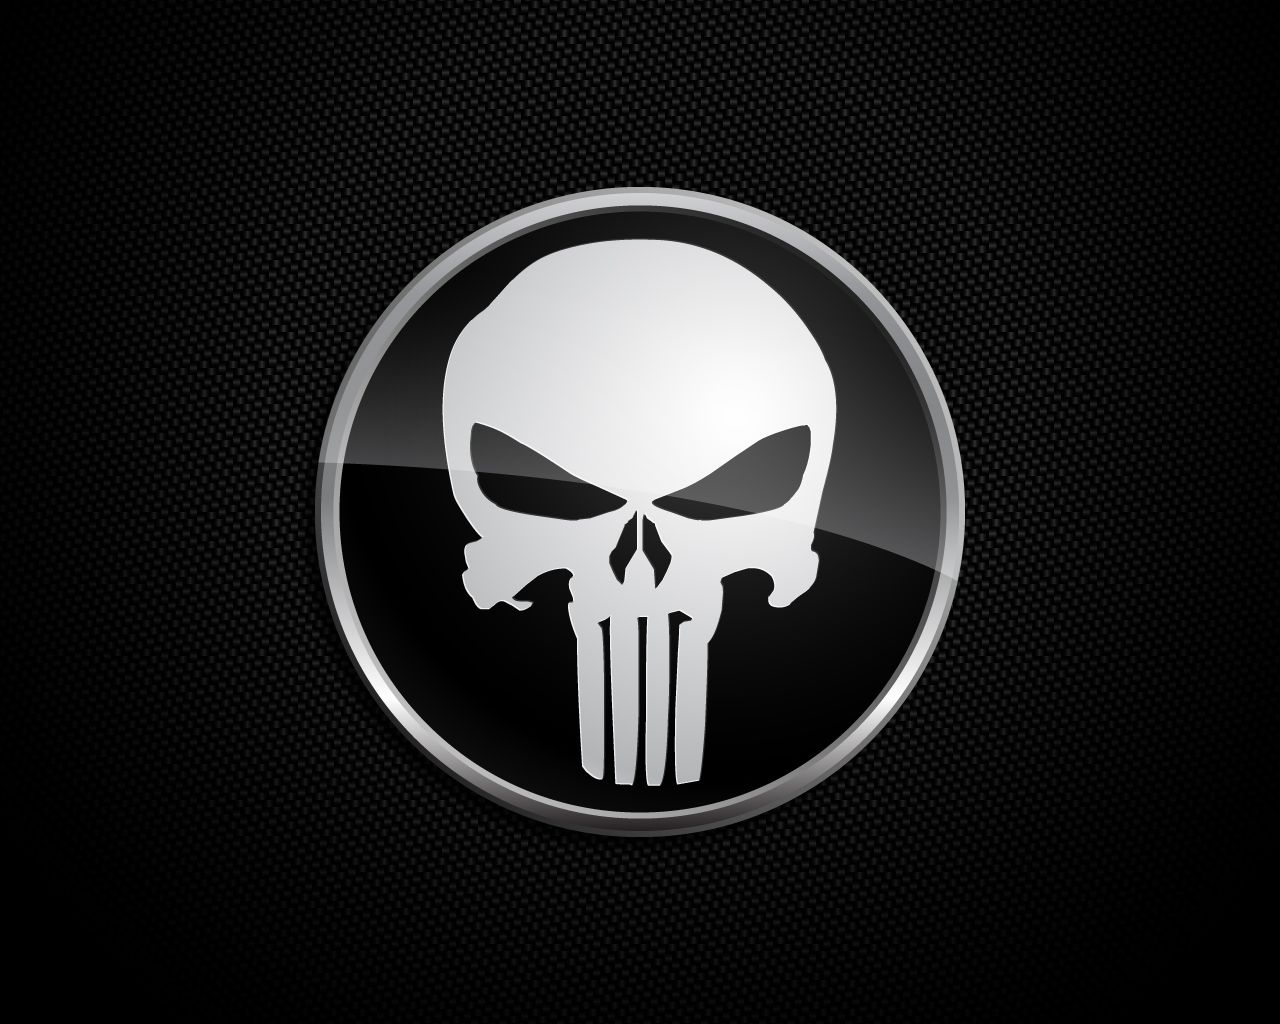 The Punisher Logo Wallpaper Hd Wallpapers (High